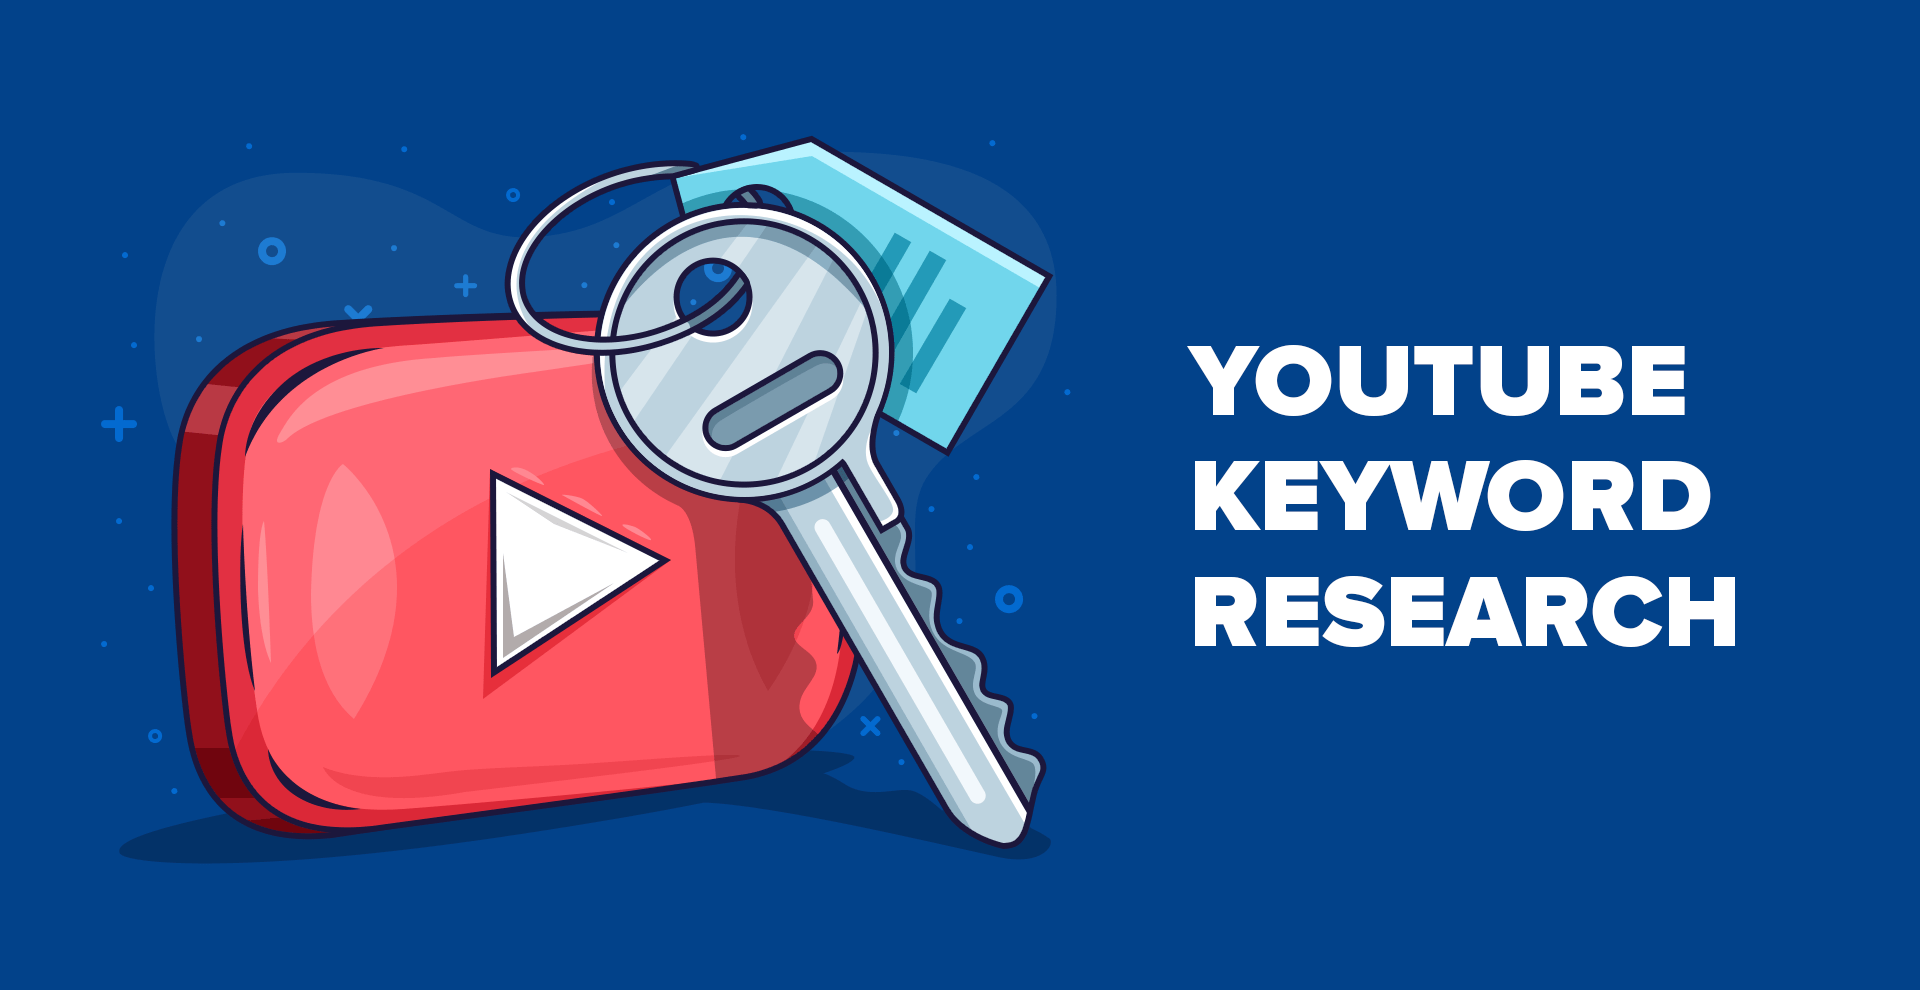 YouTube Hands Out Different Keyword Research Tips For Videos